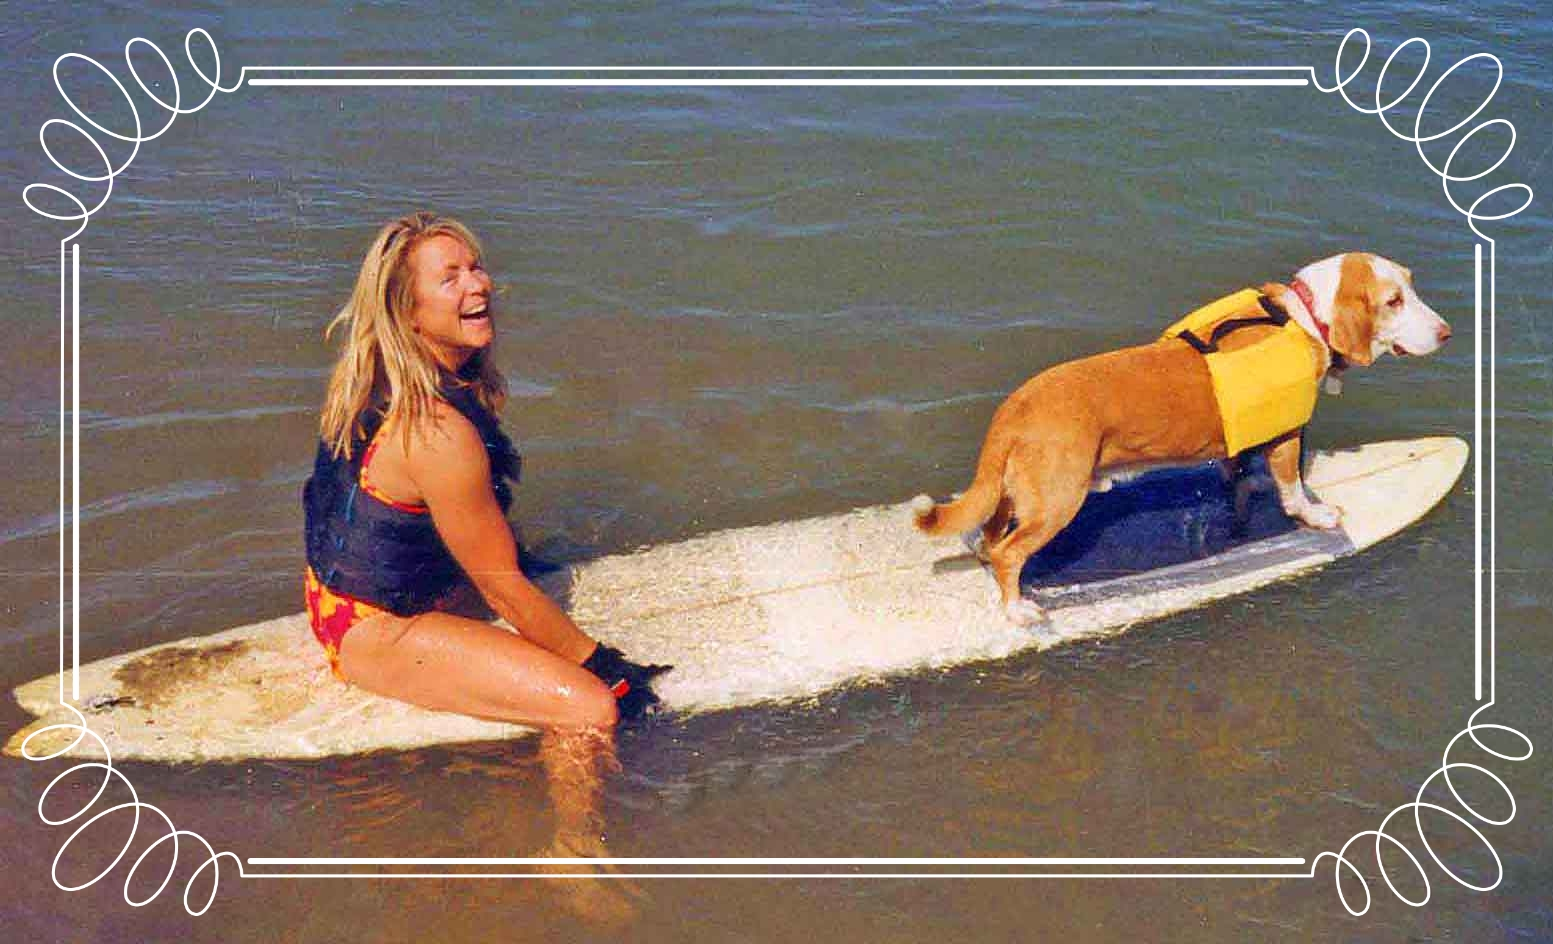 River surfing on the Colorado River, one of Howdy's many sports. Howdy rode waves at Dog Beach and windsurfed Mission Bay in San Diego and was star of national TV shows. Howdy was my co-chair of Ocean Beach Town Council's Dog Beach Committee - together with the community, we fixed up our favorite beach.     Photo (c) Barb Ayers, DogDiary.org